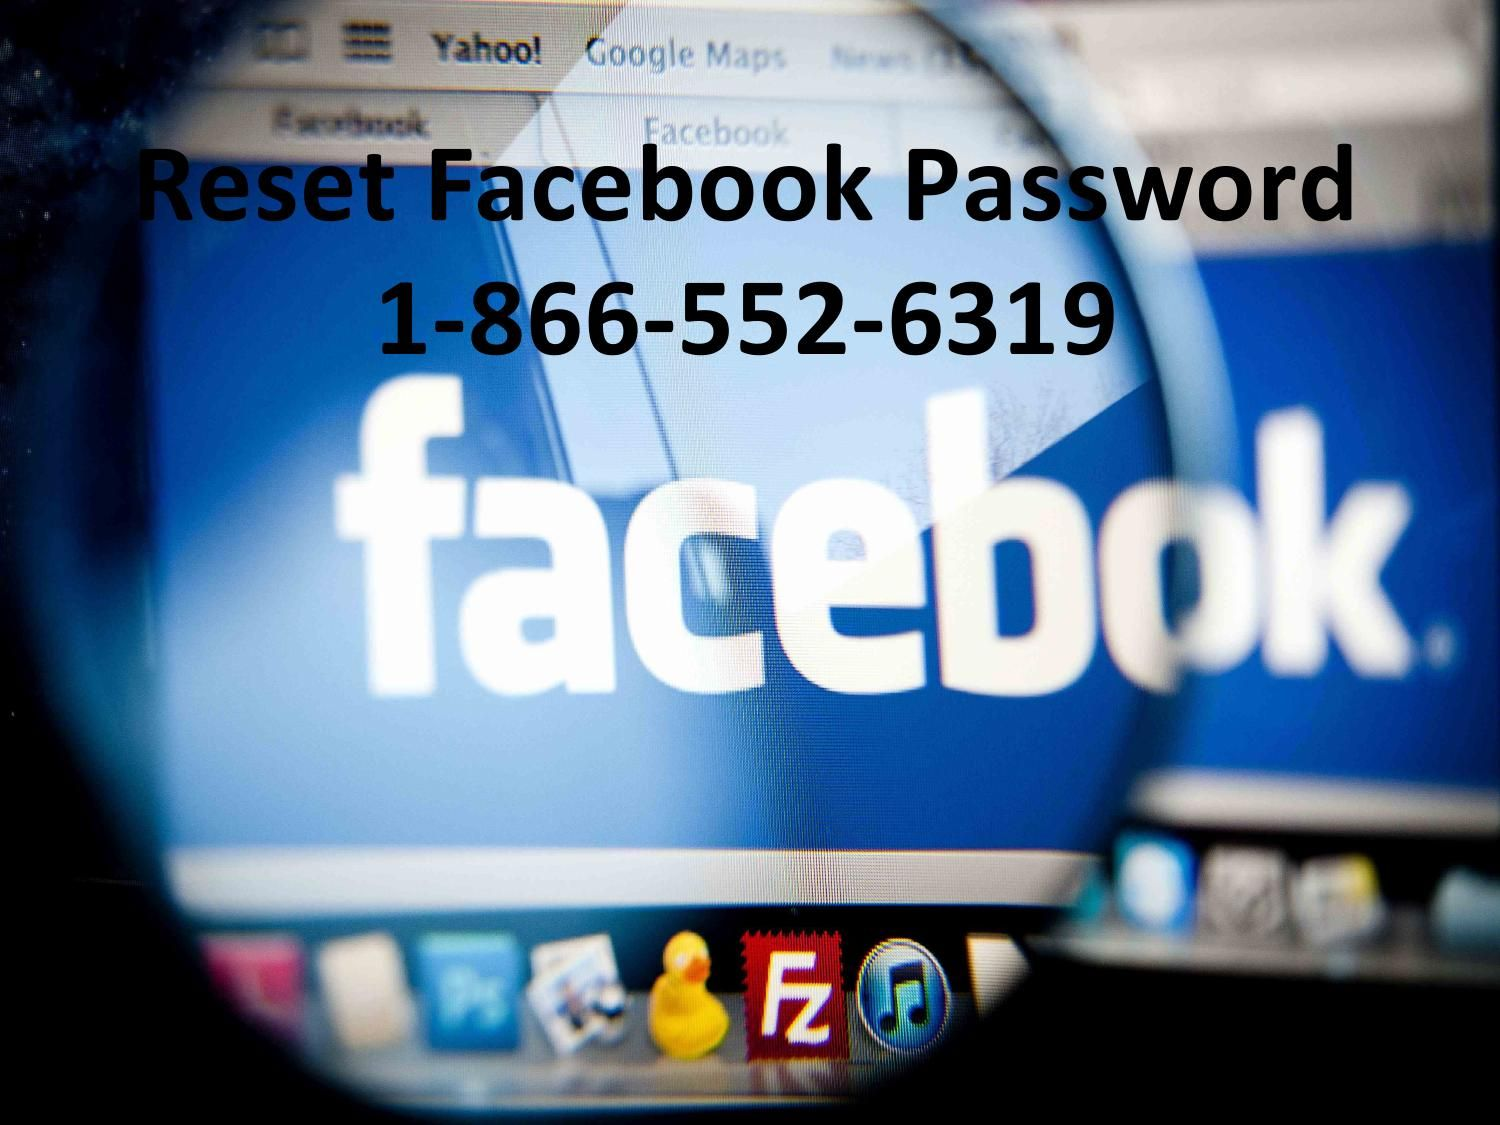 Call now 1 866 552 6319 reset facebook password toll free